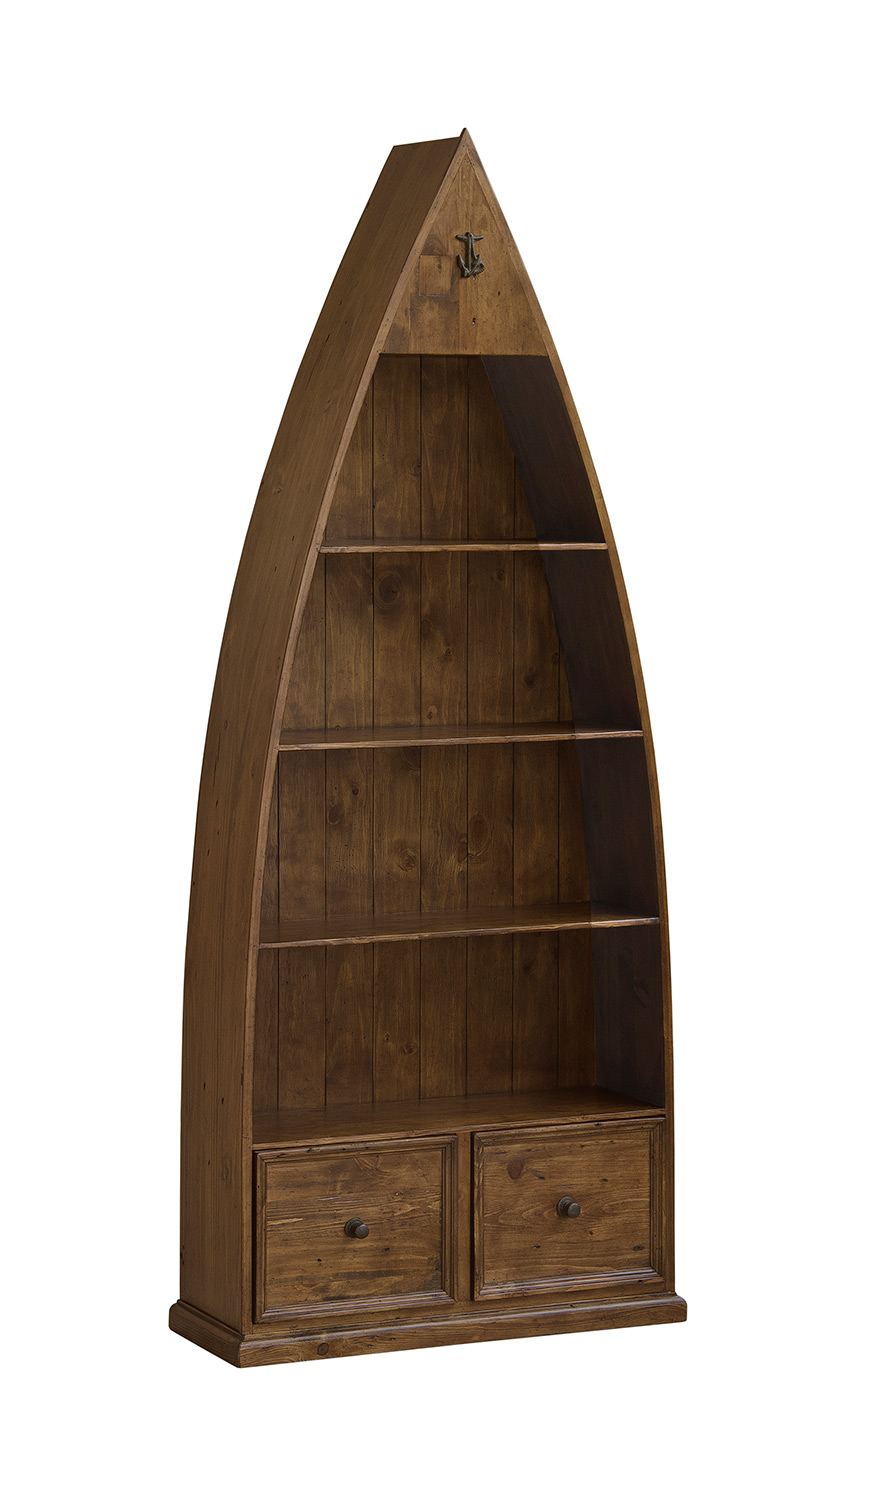 Hillsdale Tuscan Retreat Boat Bookshelves and Storage - Antique Pine